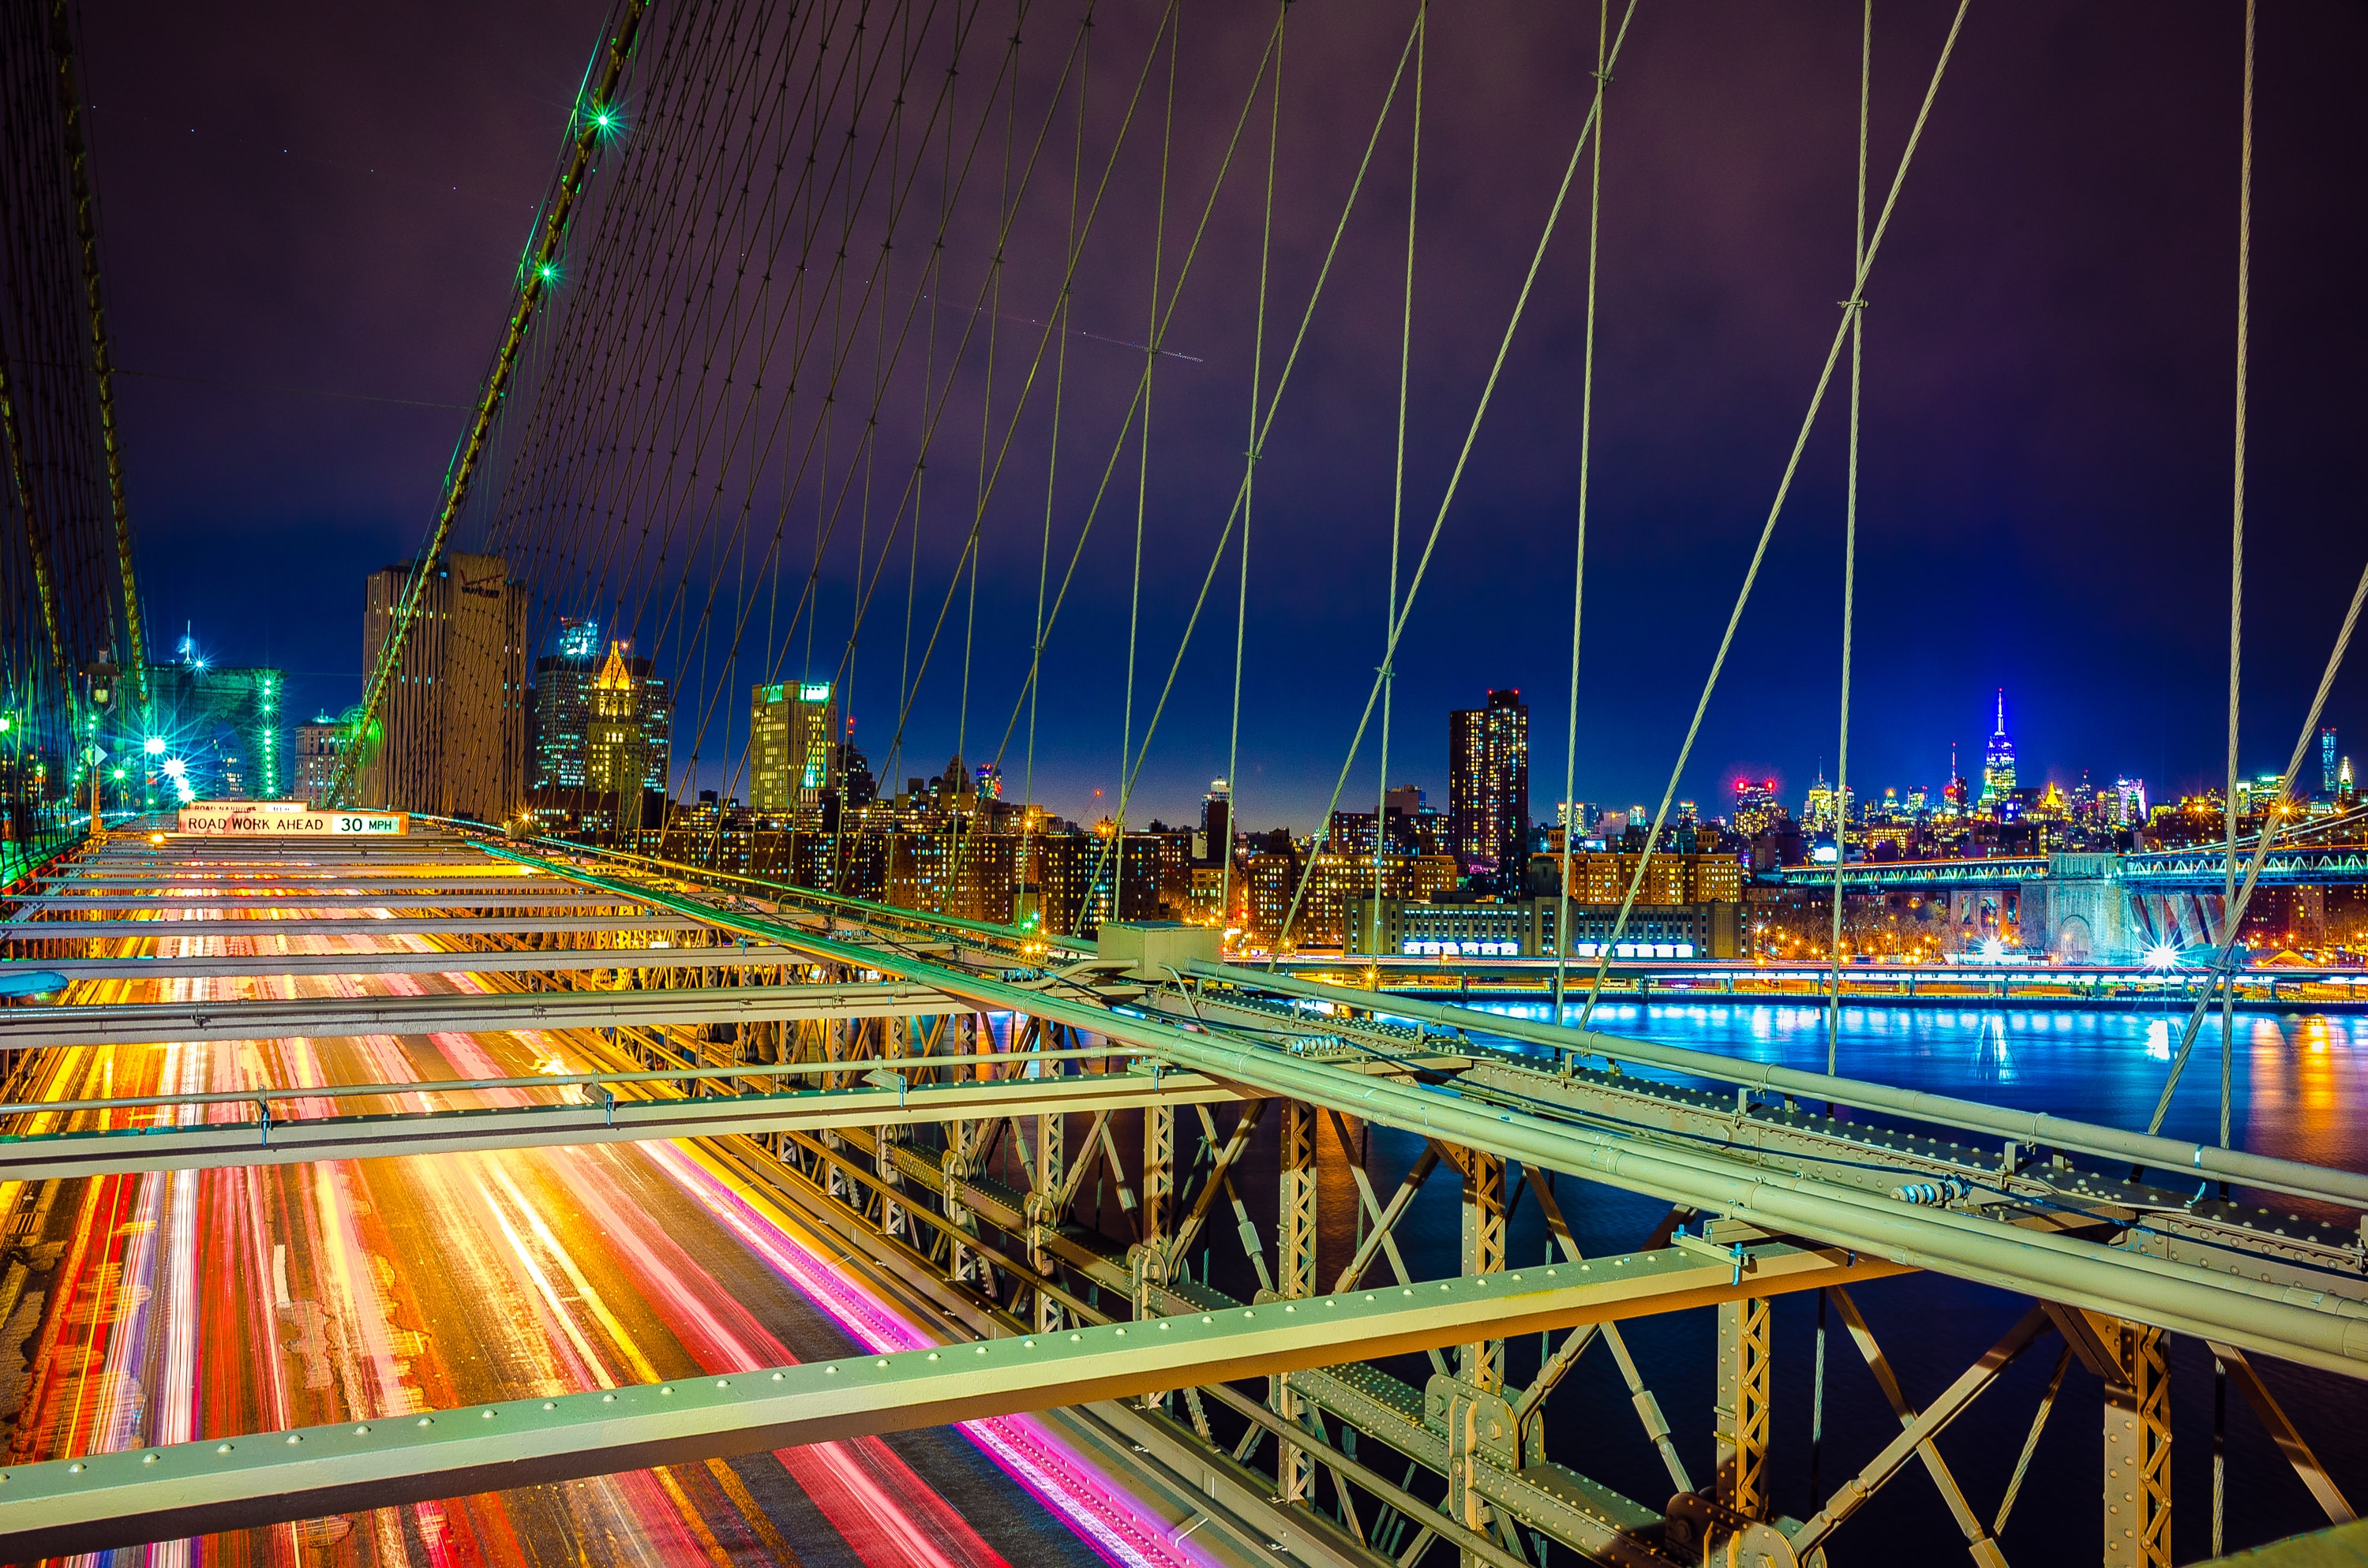 Cars light up the Brooklyn Bridge as they speed across it at night